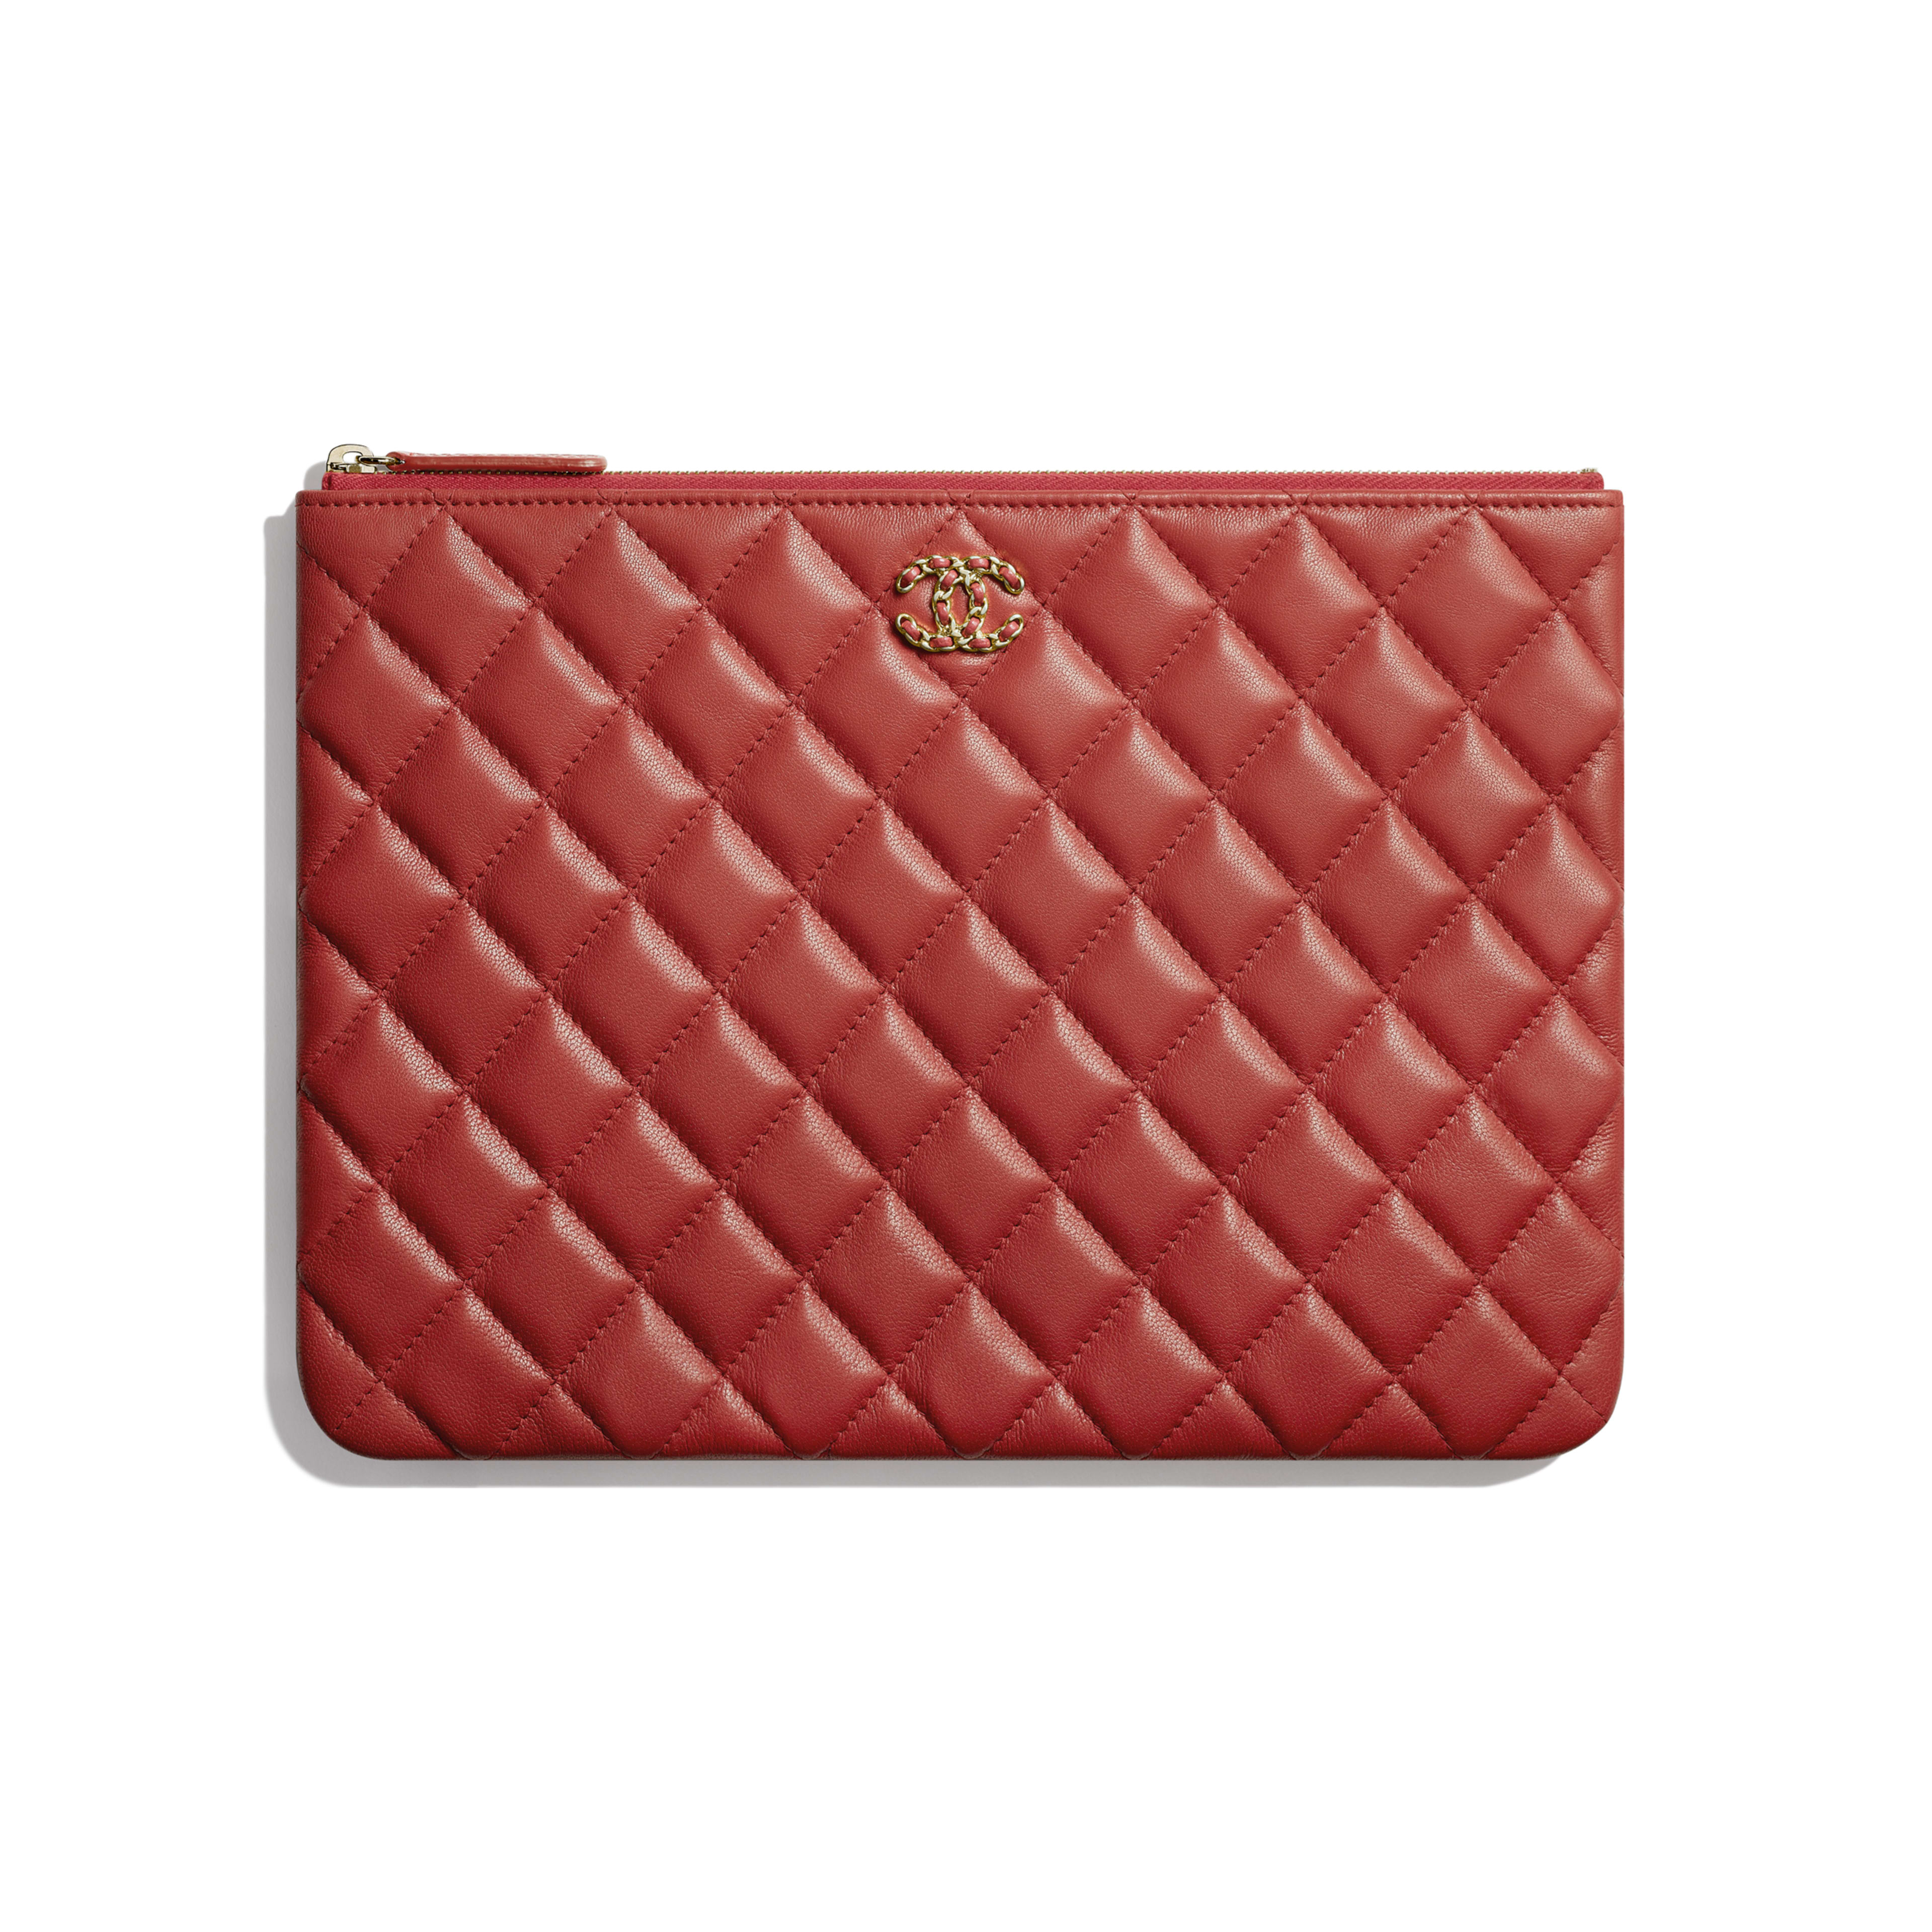 Pouch - Red - Lambskin & Gold-Tone Metal - Default view - see full sized version